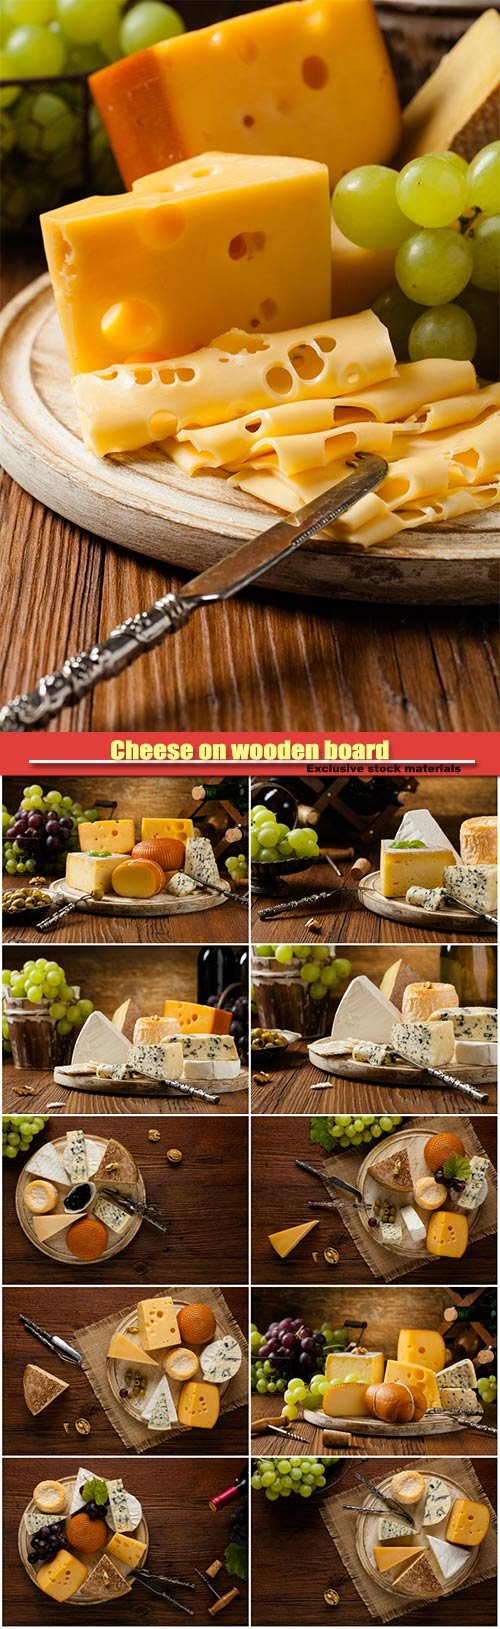 Cheese on wooden board